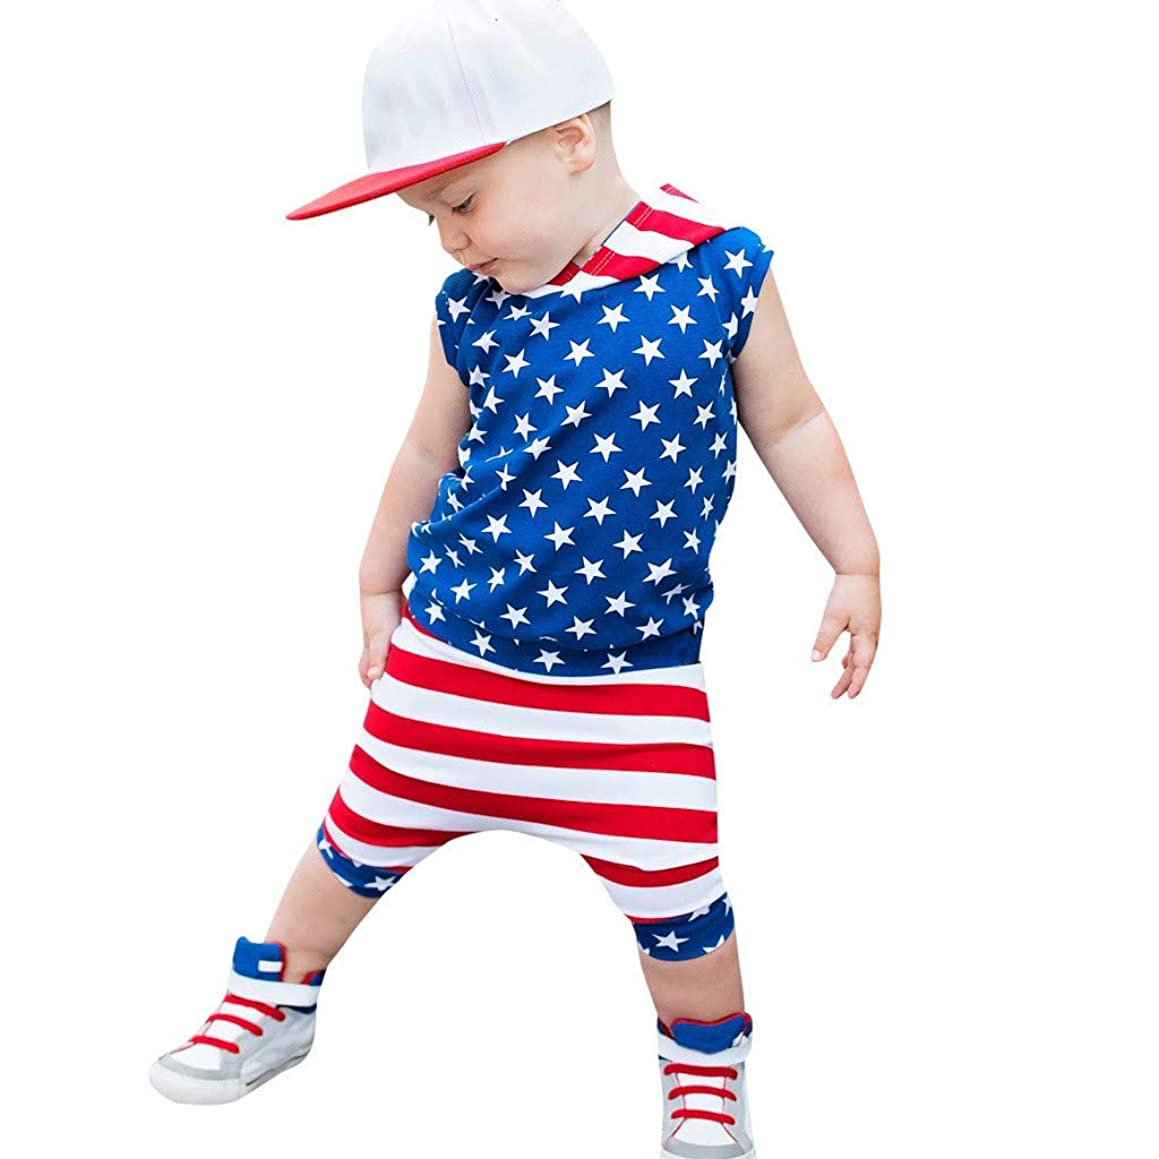 ★QueenBB★ 4th of July Children's Outfits for Boys Baby American Flag 4th of July T-Shirt Vest Tops+Harem Pants 2Pcs Set